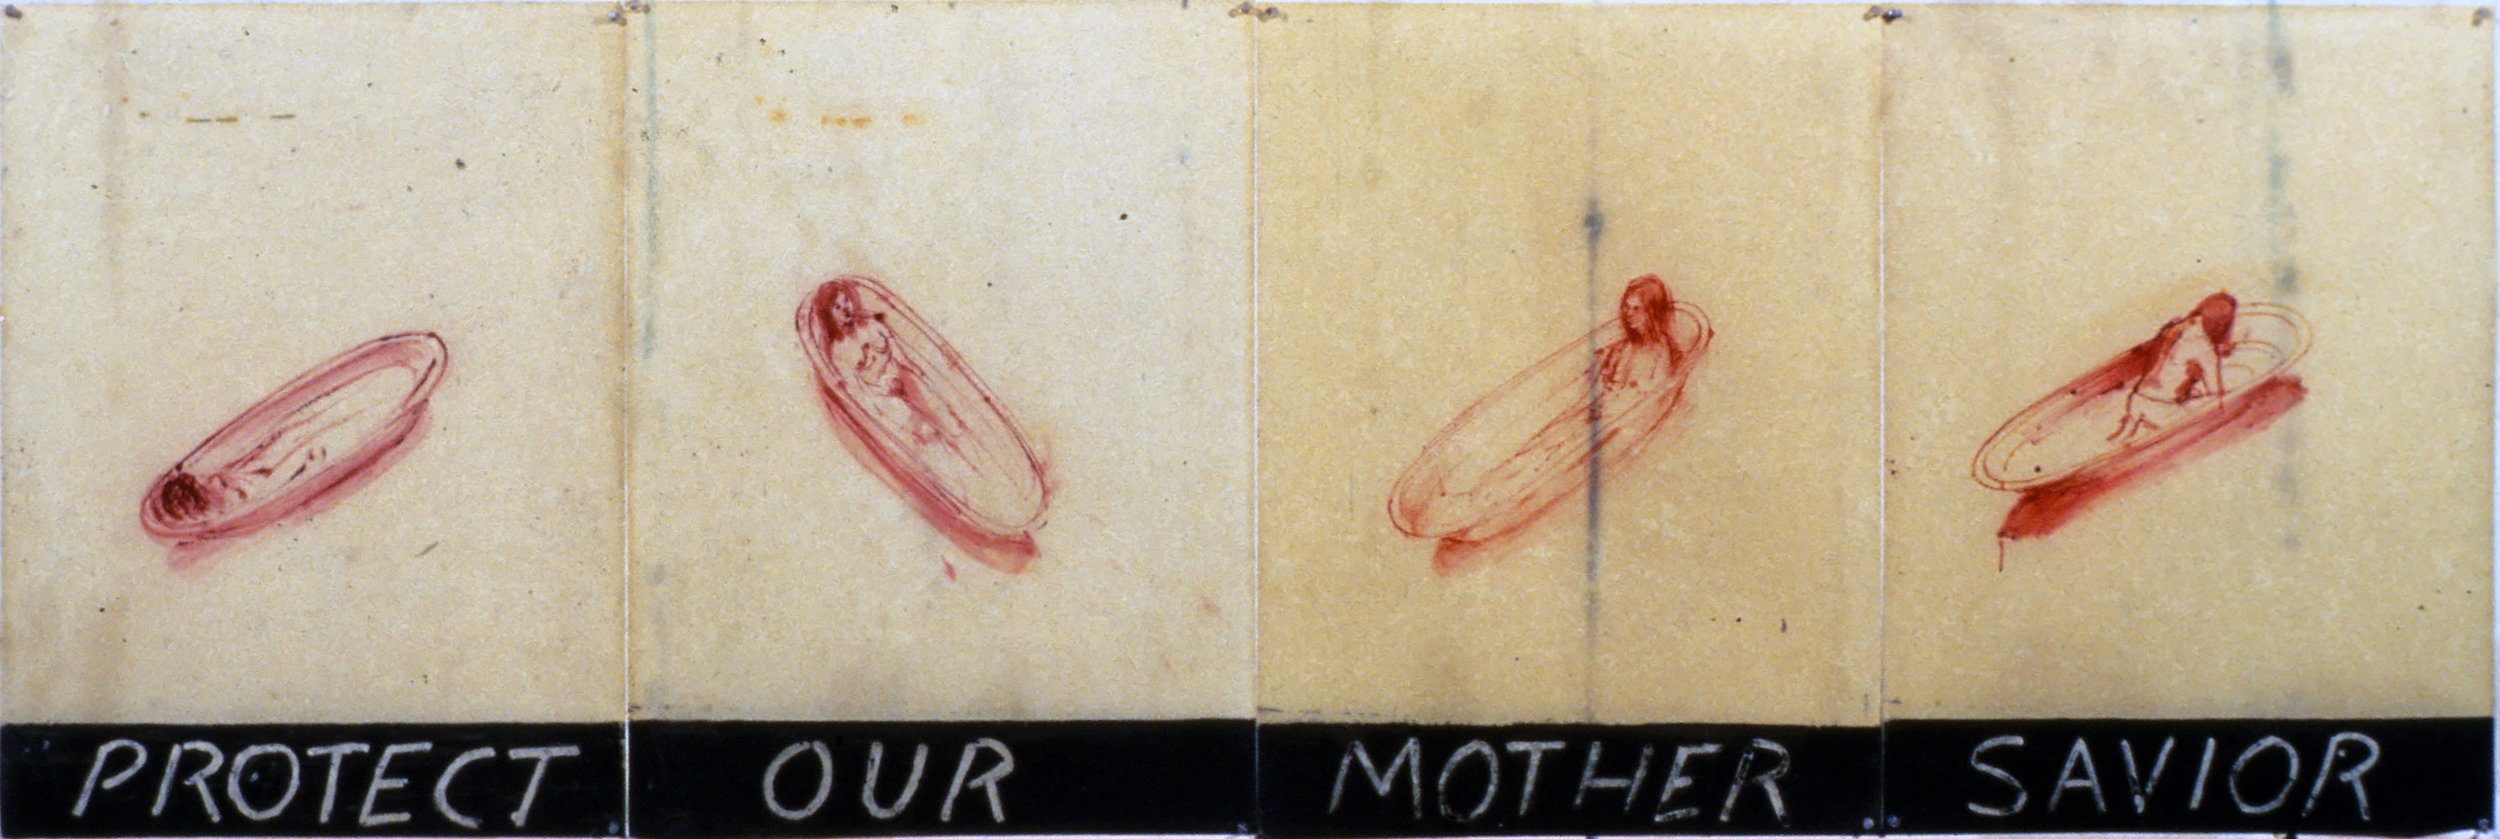 Protect Our Mother Savior, 1978. ink and oil on paper. 31 1/2 x 74 in.